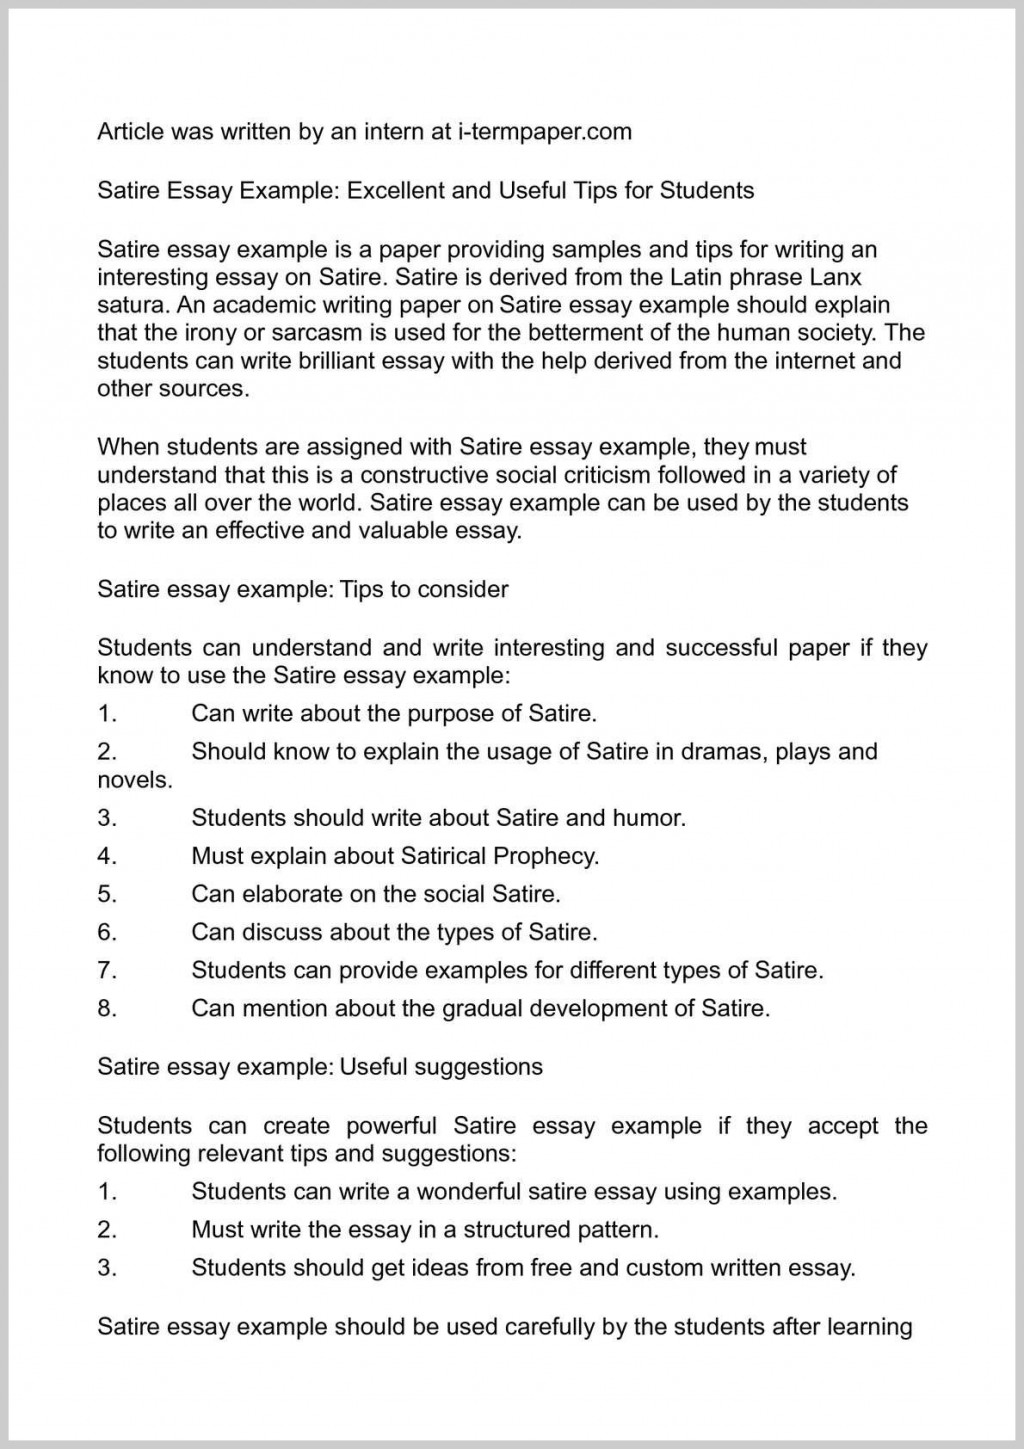 014 Essay Satiric Negative Impacts Of Social Media The Best Writing Satirical Topics Frightening Satire On Obesity For College 111 Large